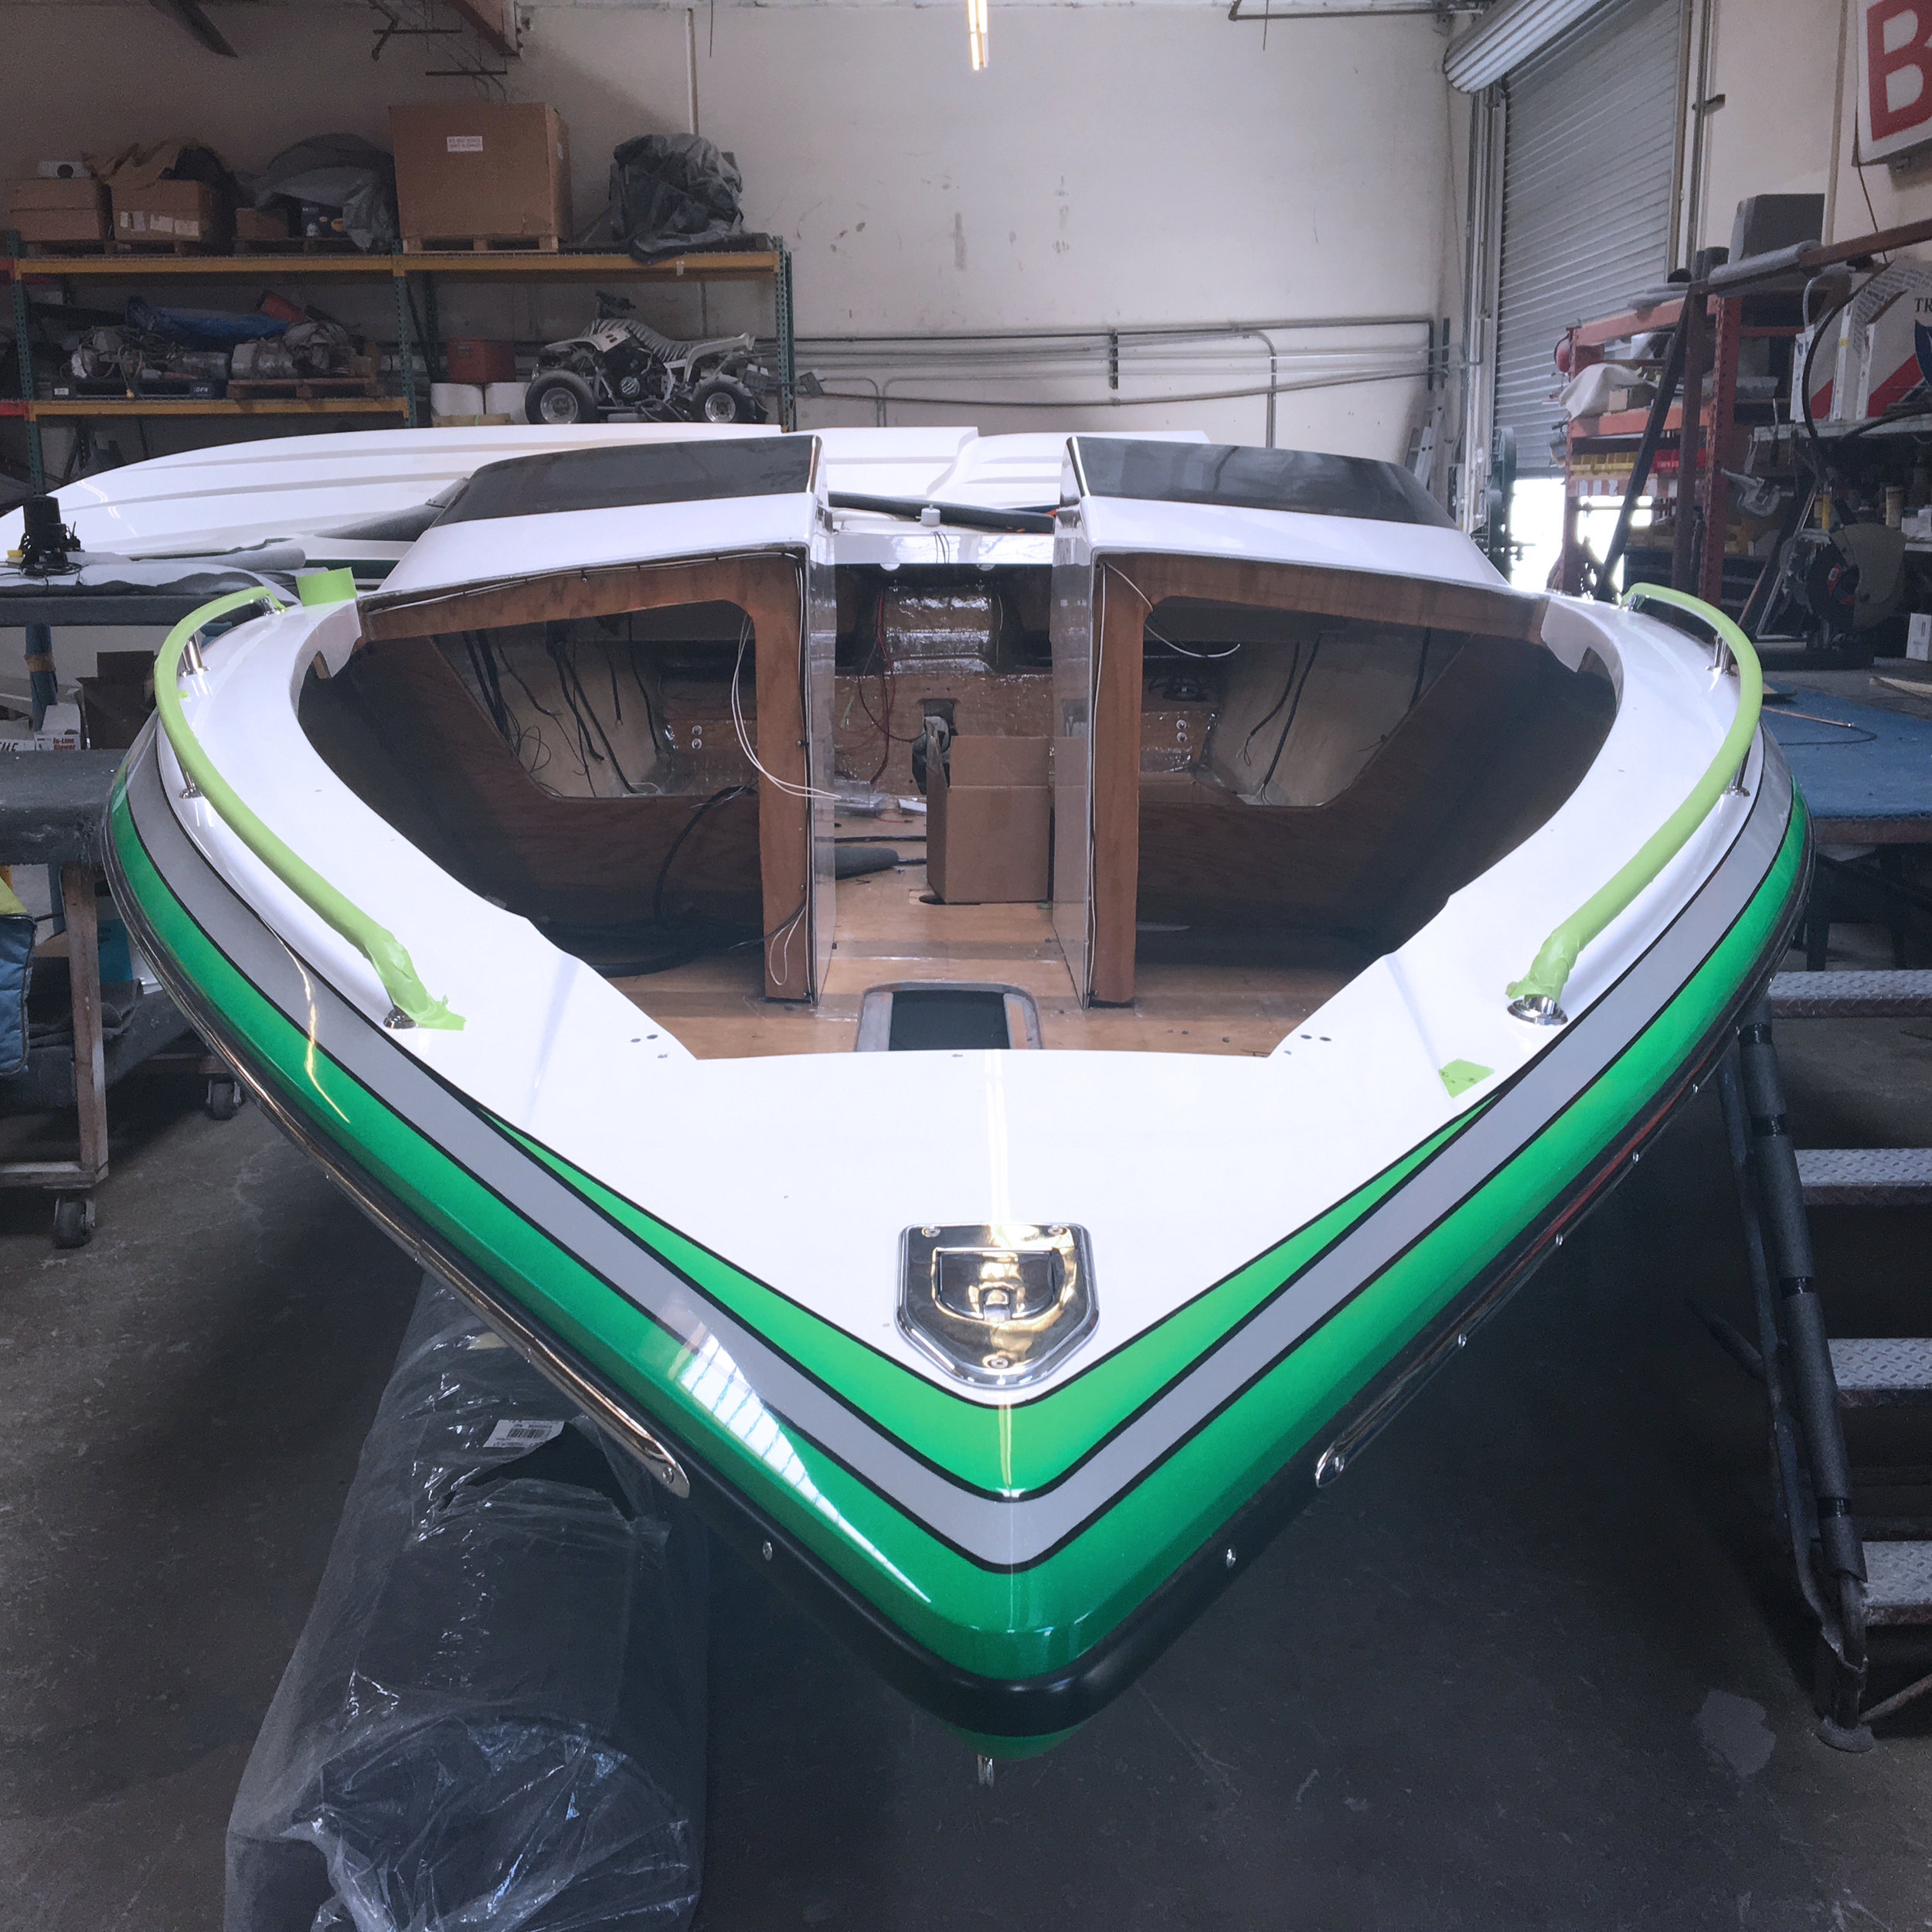 Lavey Craft 24 NuEra build May 2018.jpg